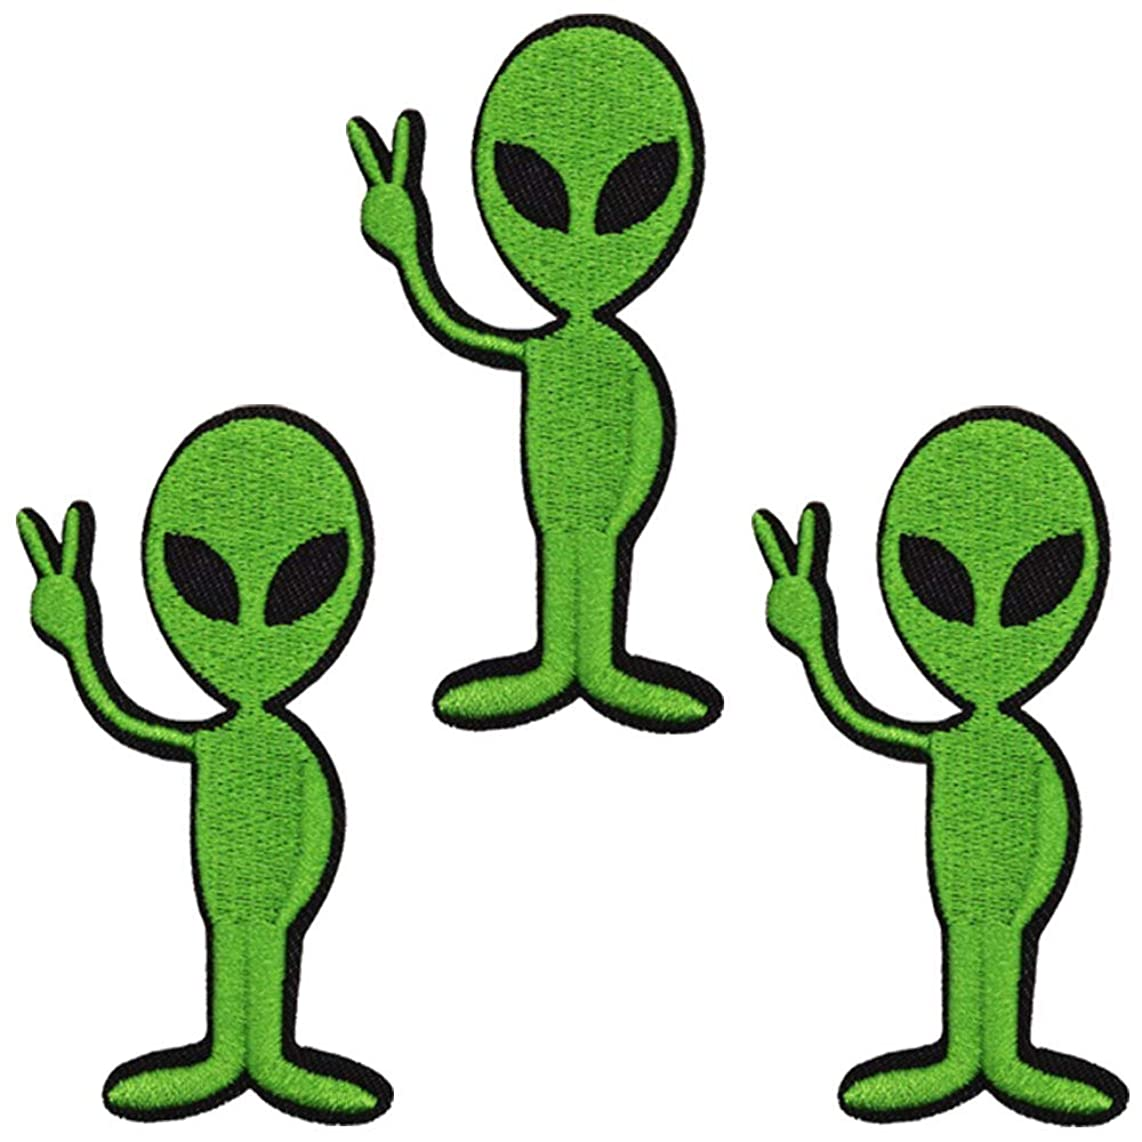 U-Sky Sew or Iron on Patches - Hello Cute Alien Patch for Jackets, Jeans, Clothing, Backpacks - Pack of 3pcs - Size:3.1x1.5inch